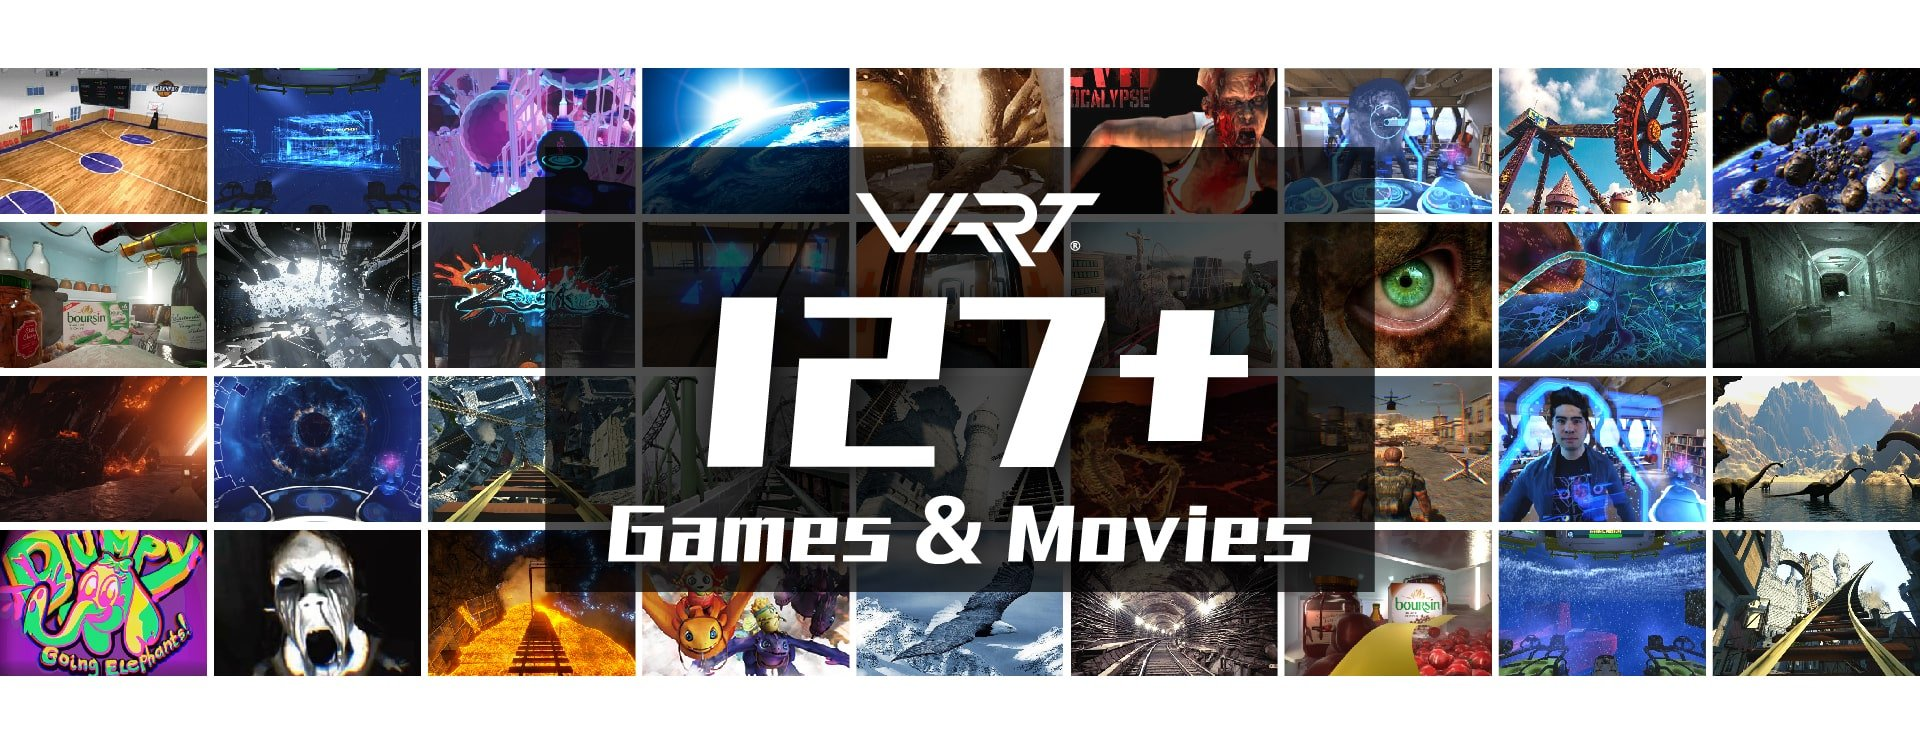 127pcs 9D VR Cinema games and movies